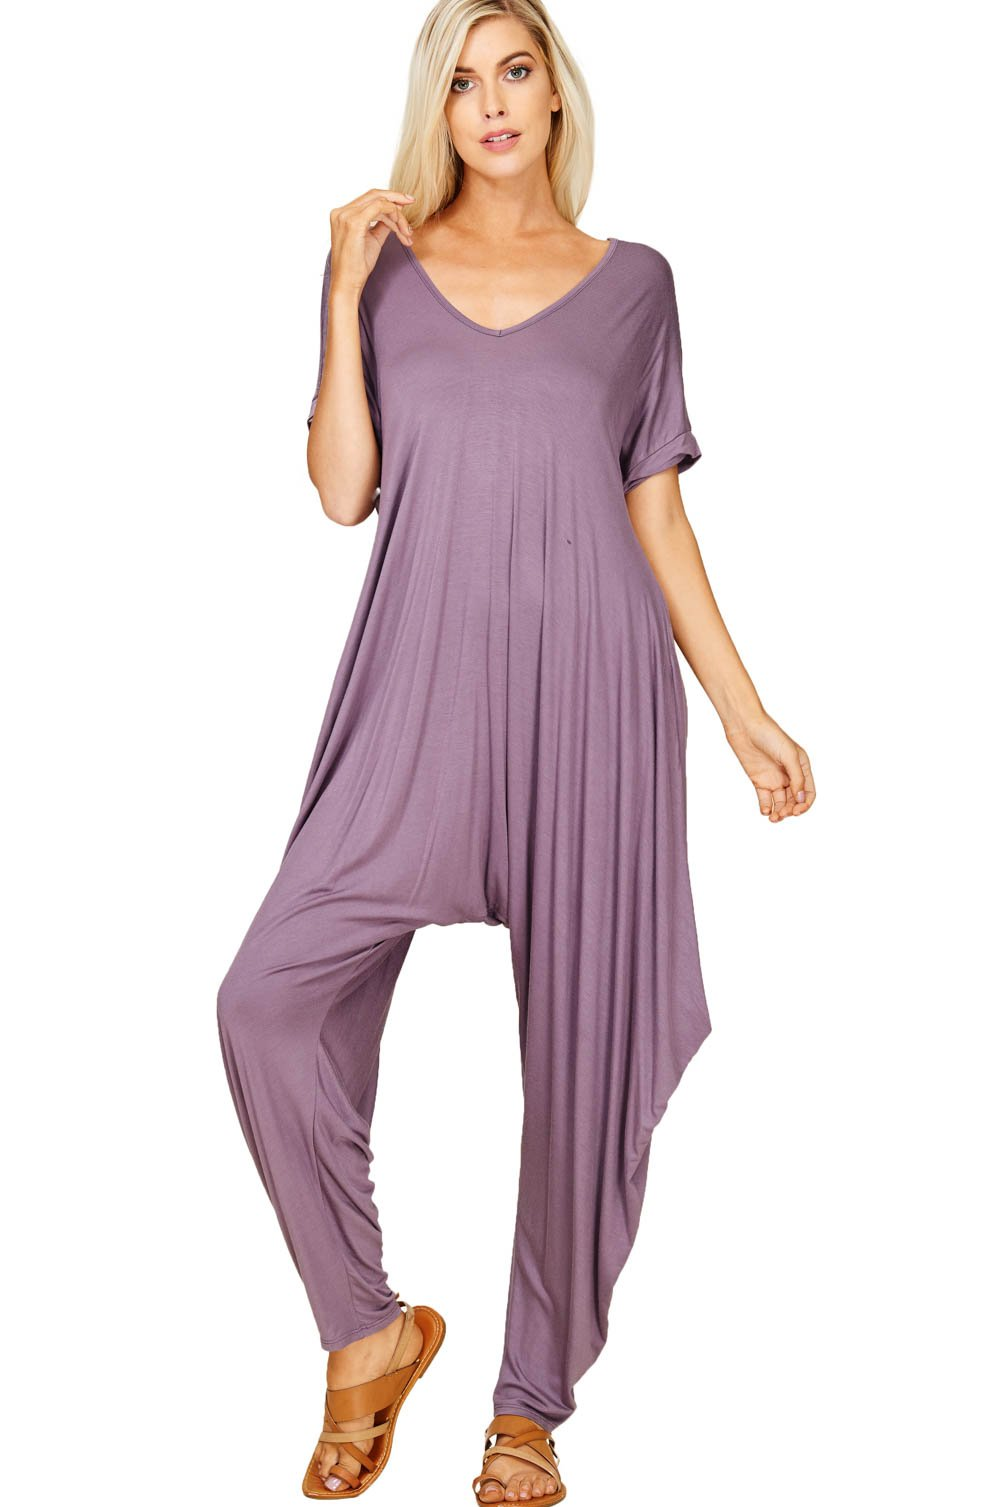 6452d1bd107 Annabelle Women s Comfy Casual Short Sleeves Harem Long Pants Jumpsuits  With Pockets Small Purplish J8051